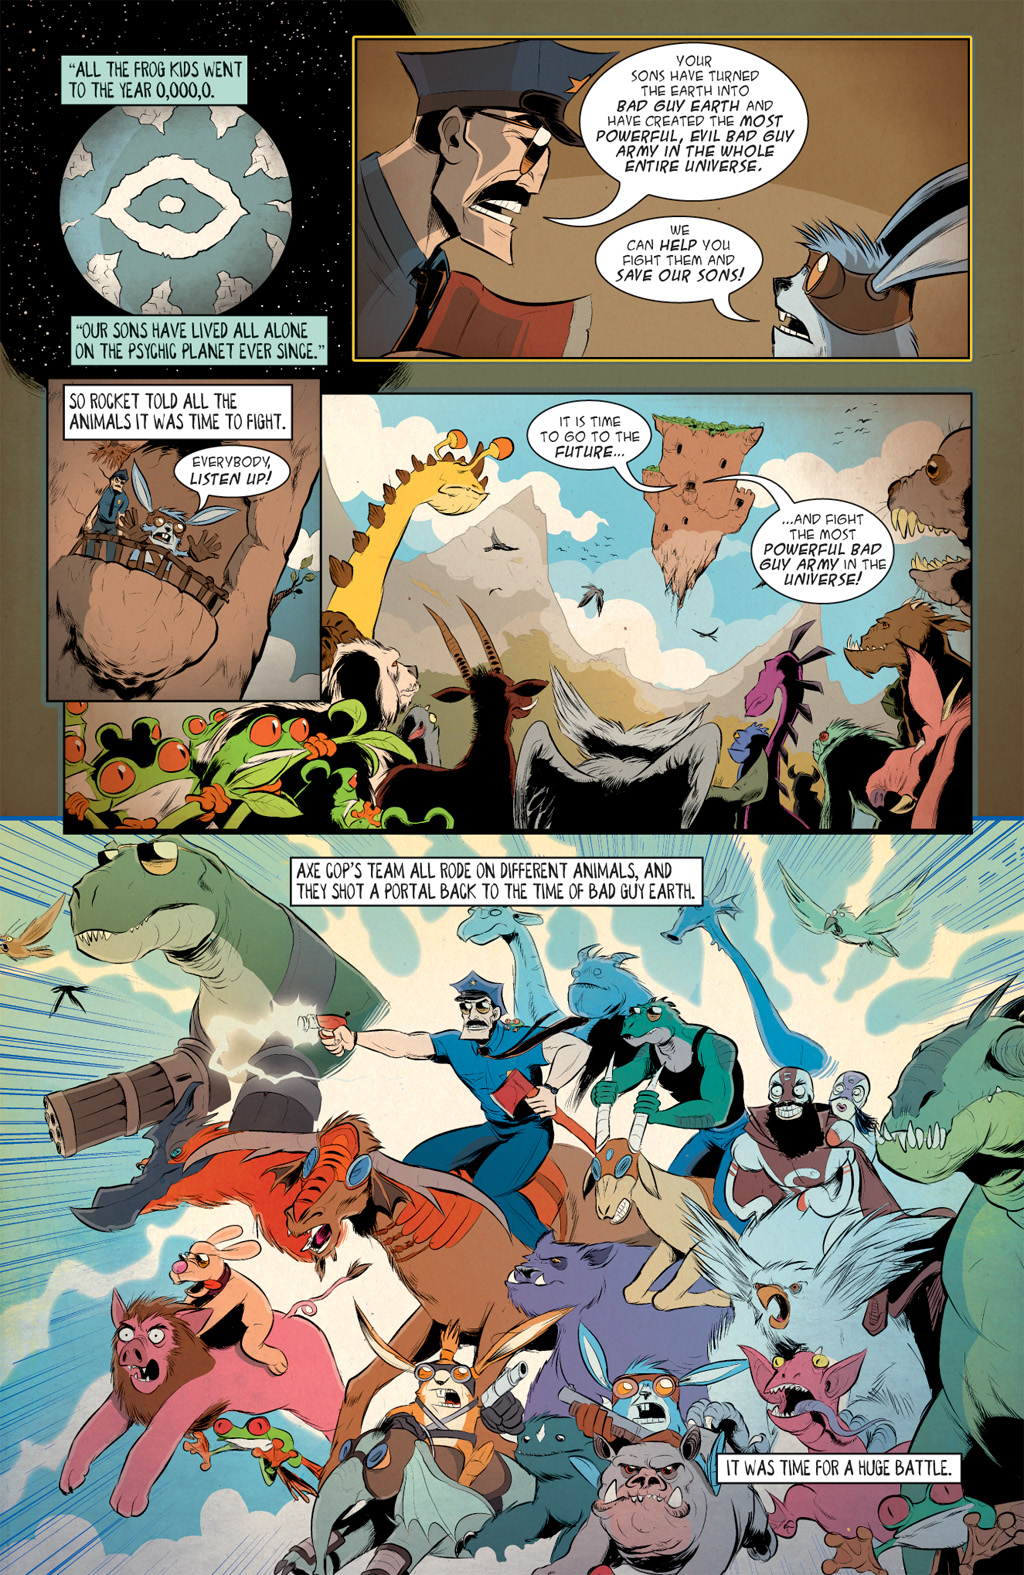 Read online Axe Cop: Bad Guy Earth comic -  Issue #3 - 5